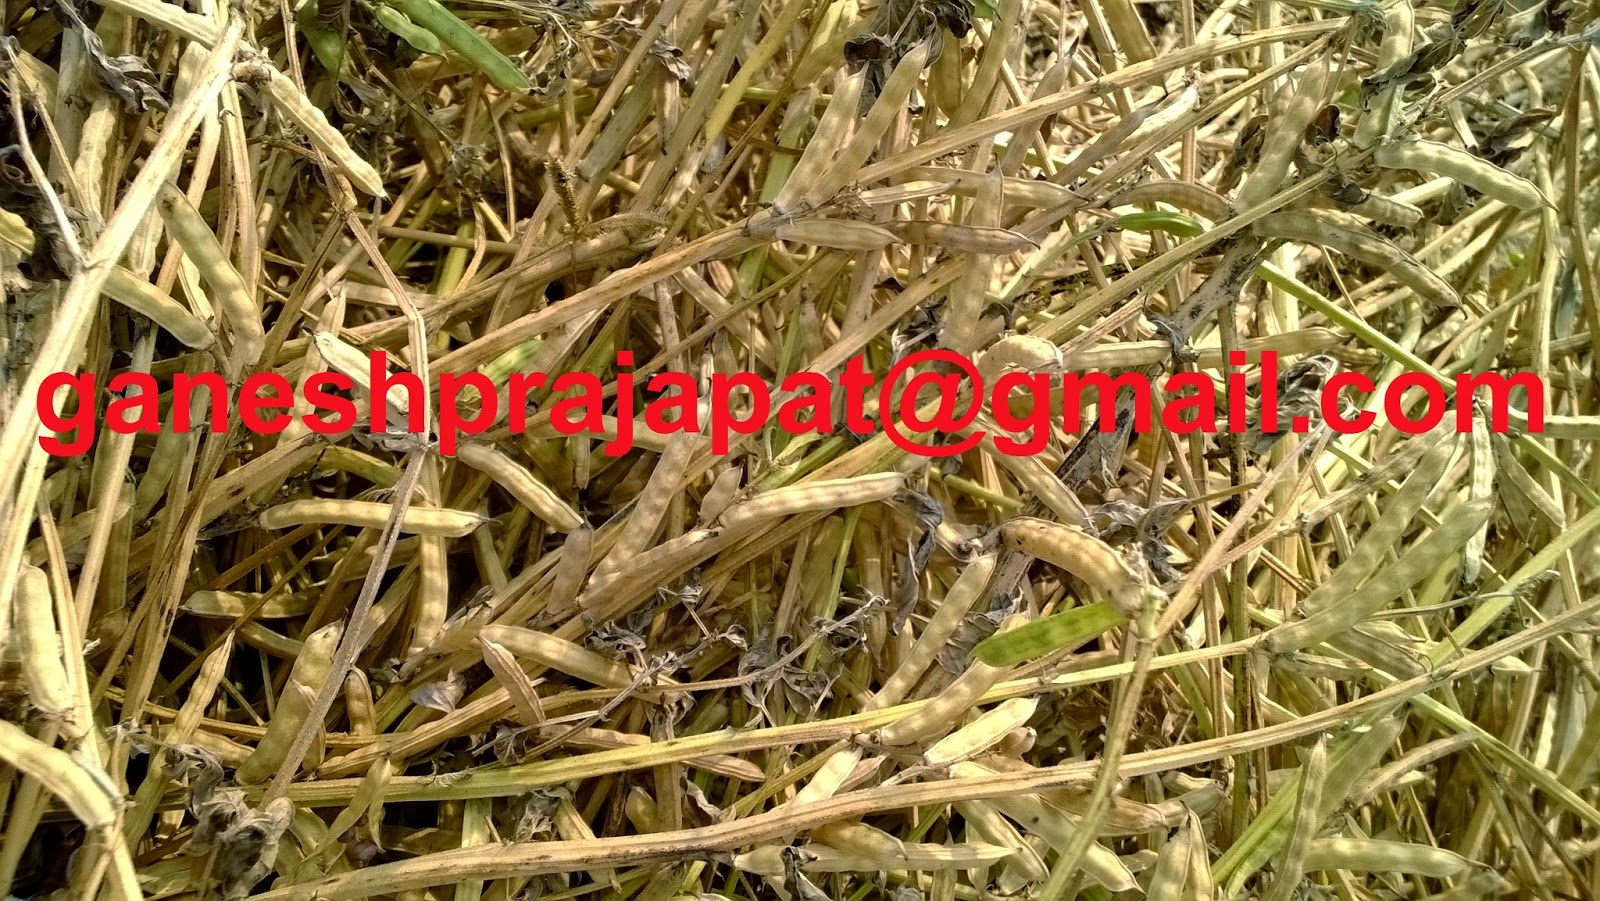 GUAR GUM INFORMATION AND GUAR GUM CULTIVATION IN INDIA: Guar